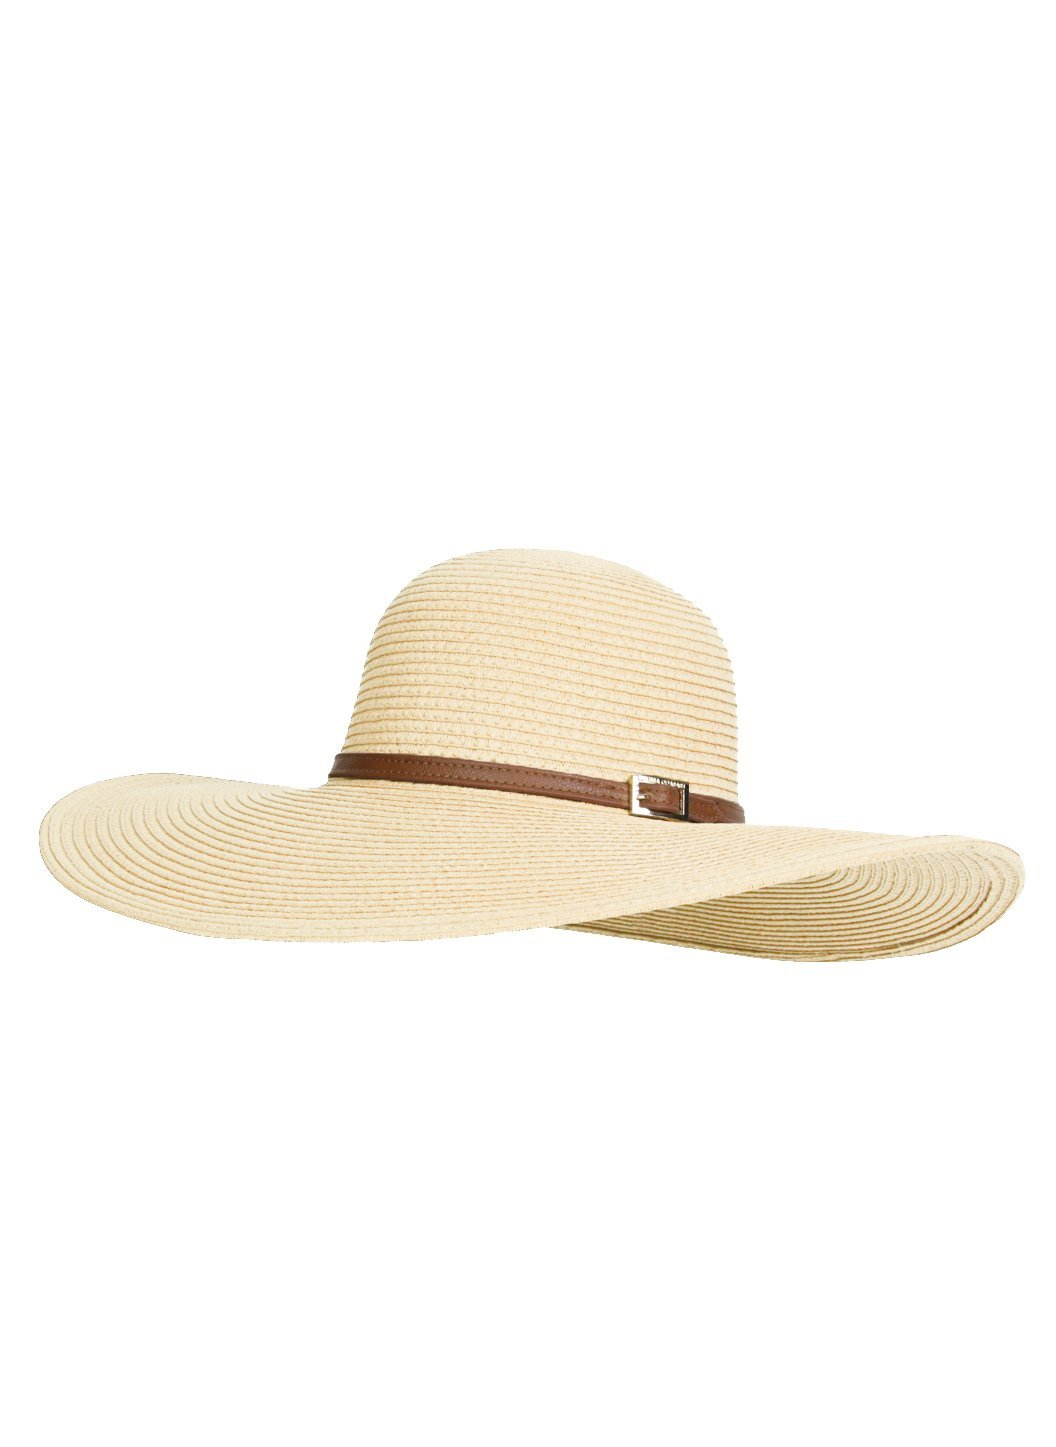 jemima hat cream